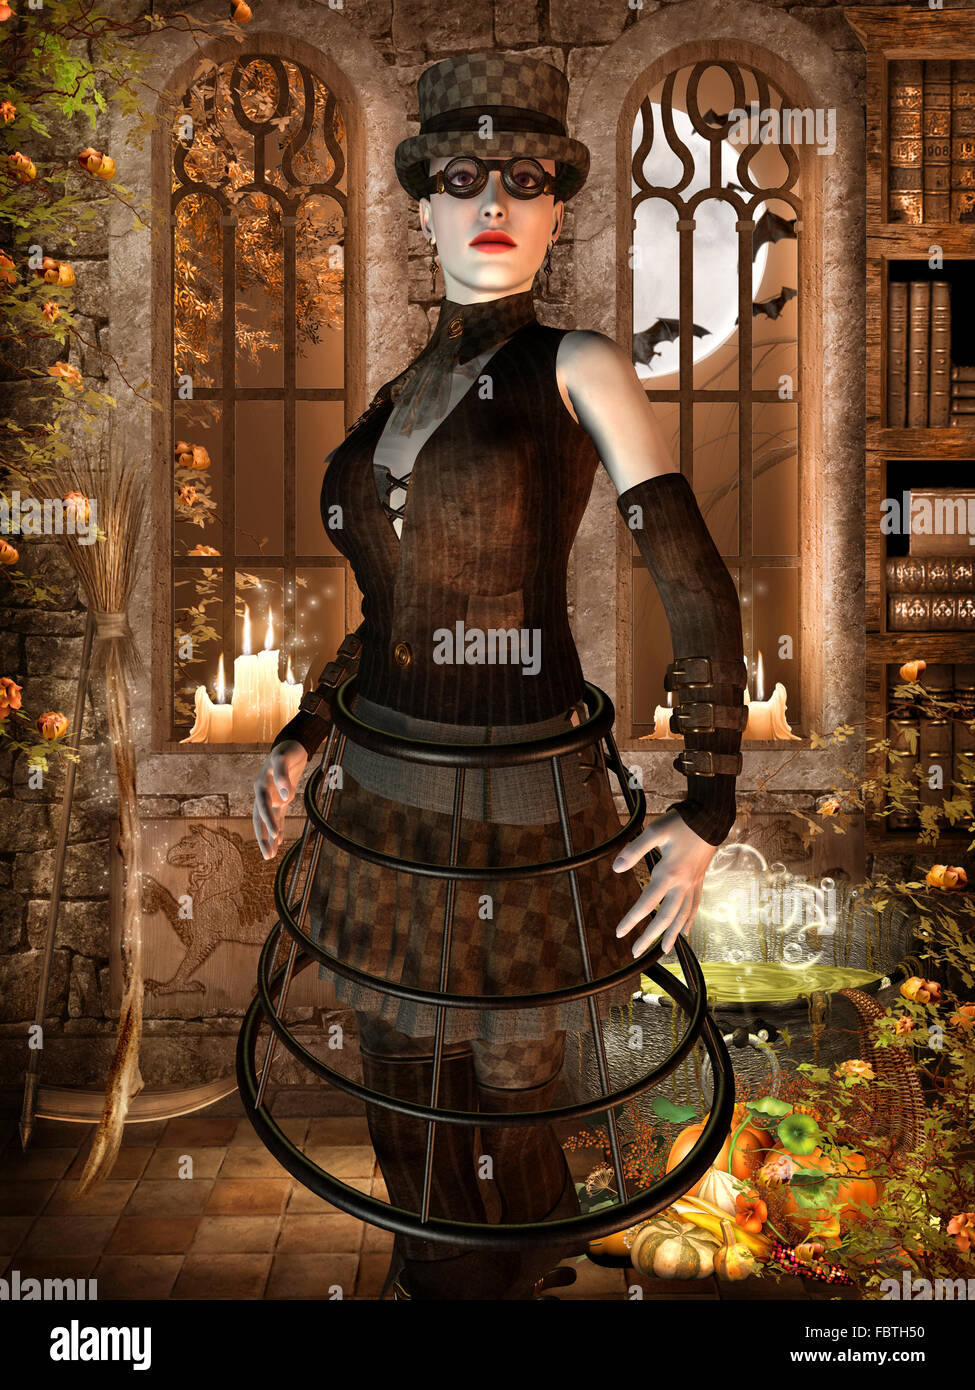 Wife of Surrealist Outfit - Stock Image